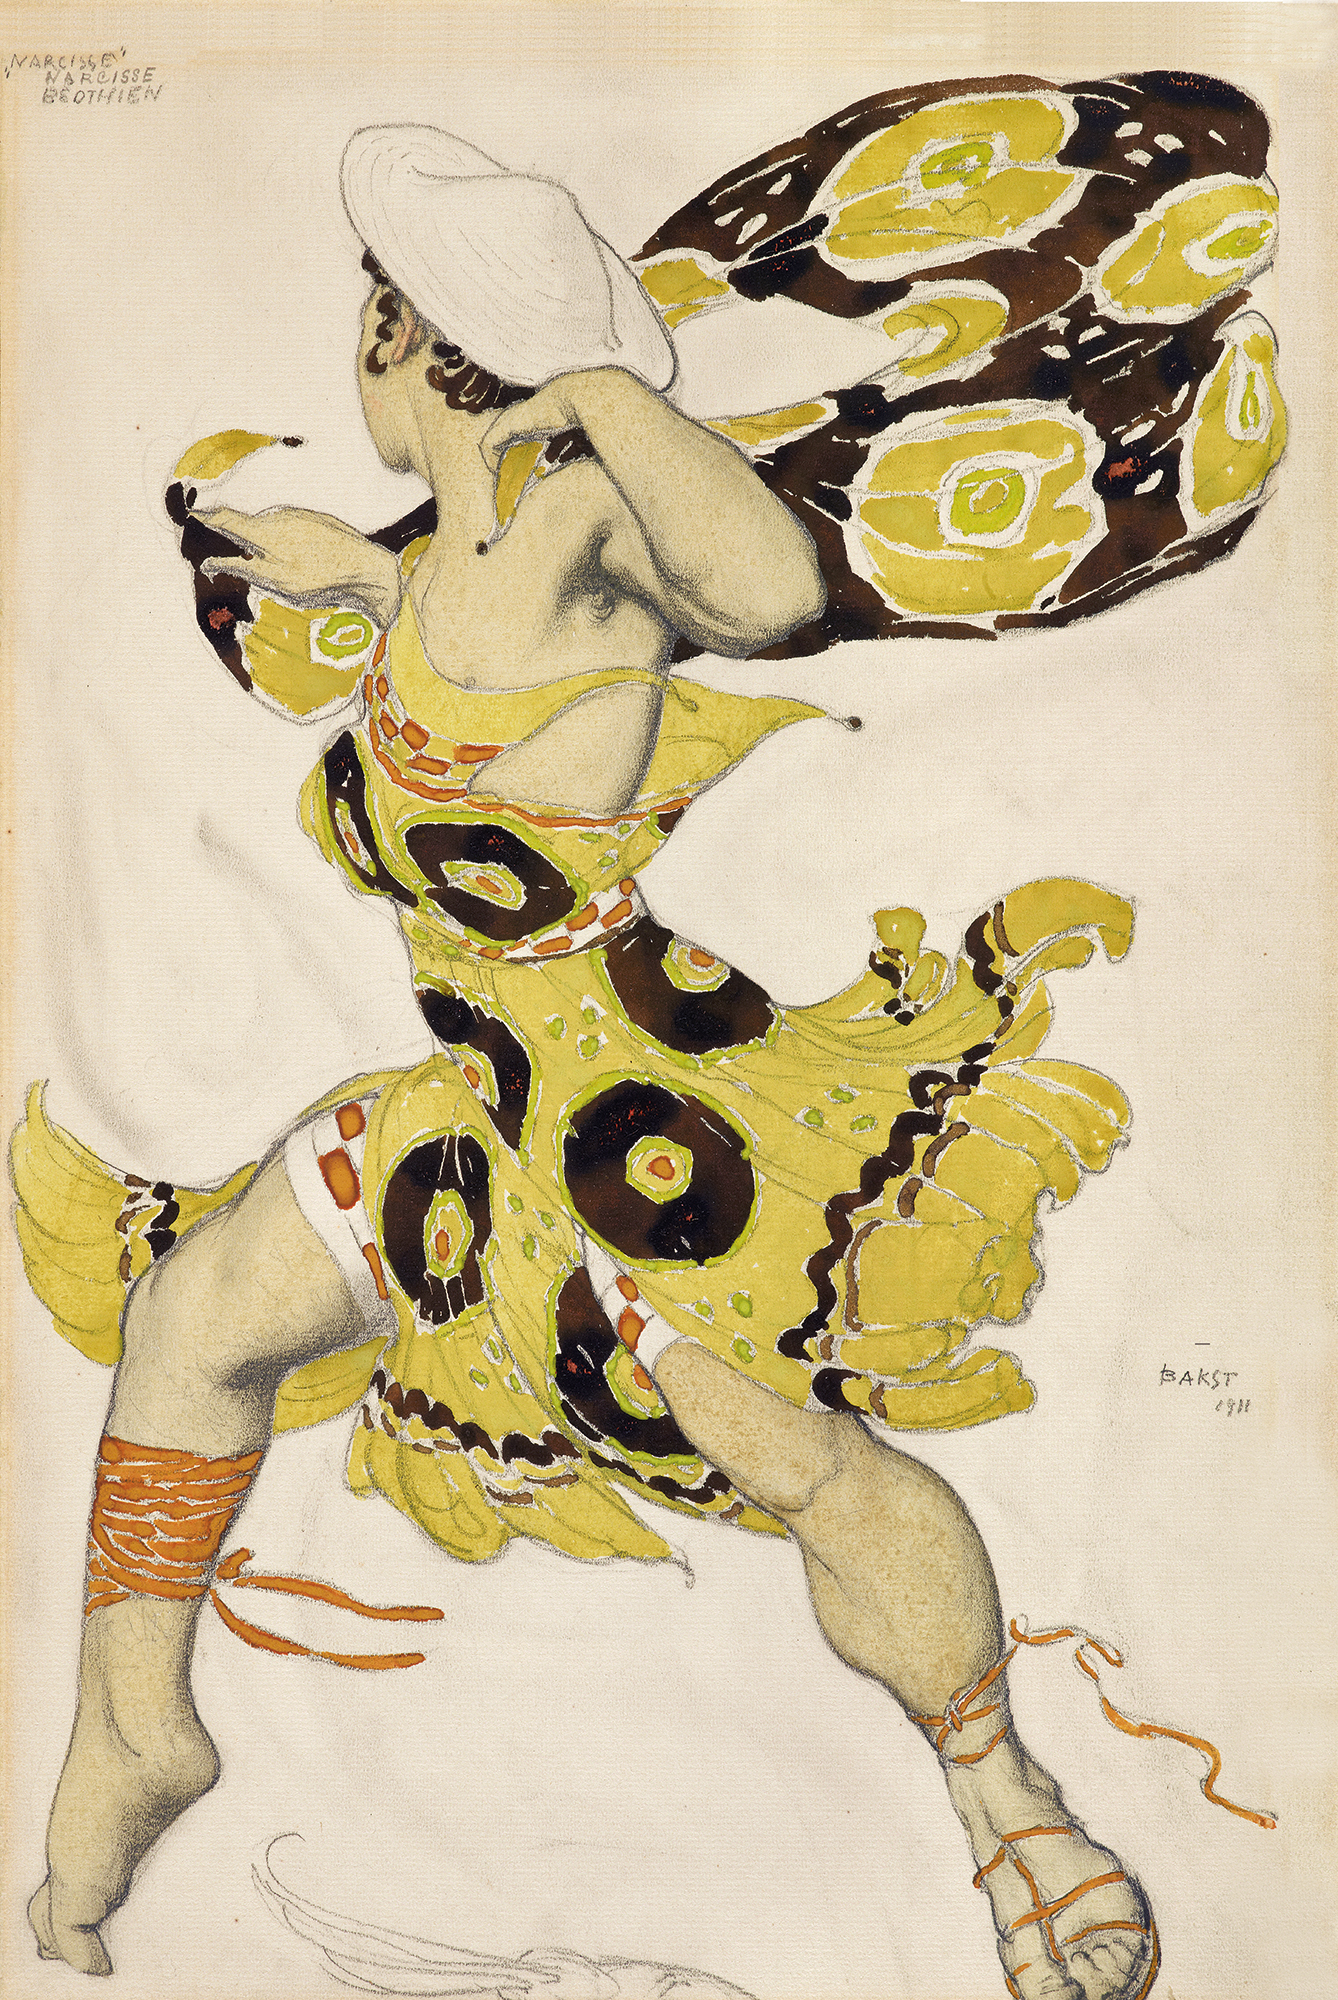 http://upload.wikimedia.org/wikipedia/commons/6/6d/Leon_Bakst_002.jpg